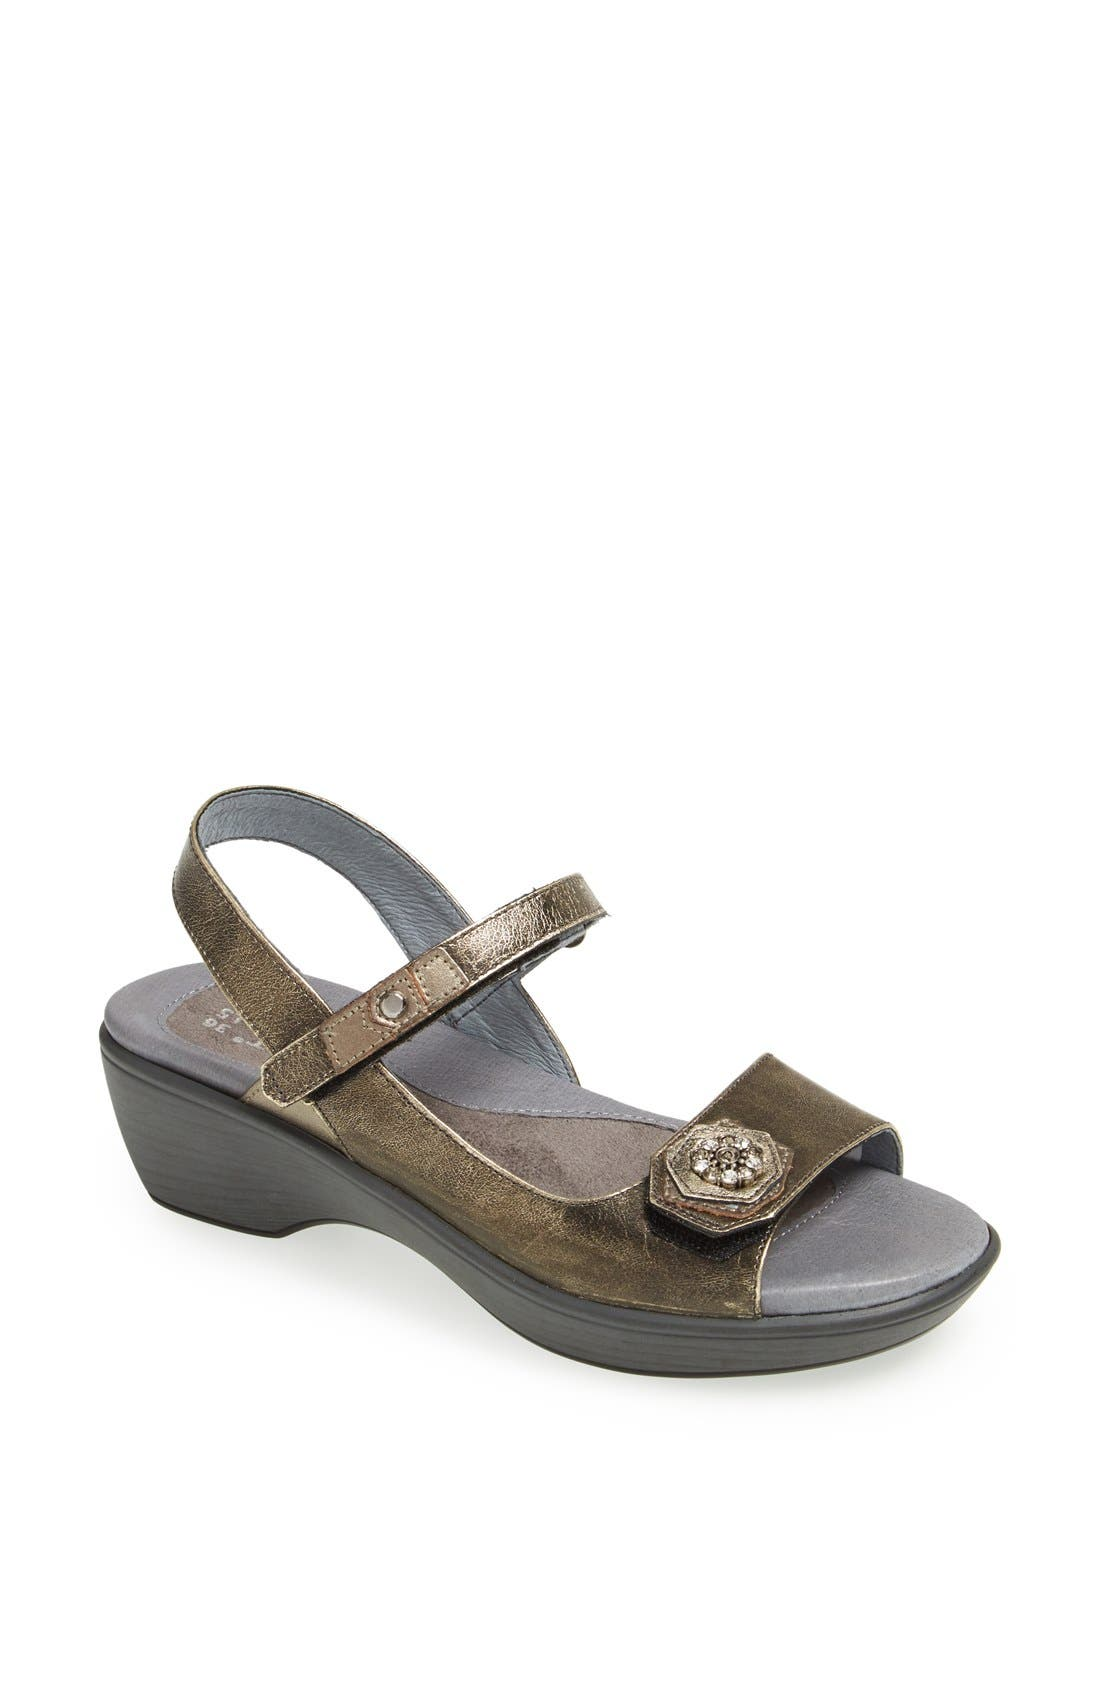 Alternate Image 1 Selected - Naot 'Reserve' Sandal